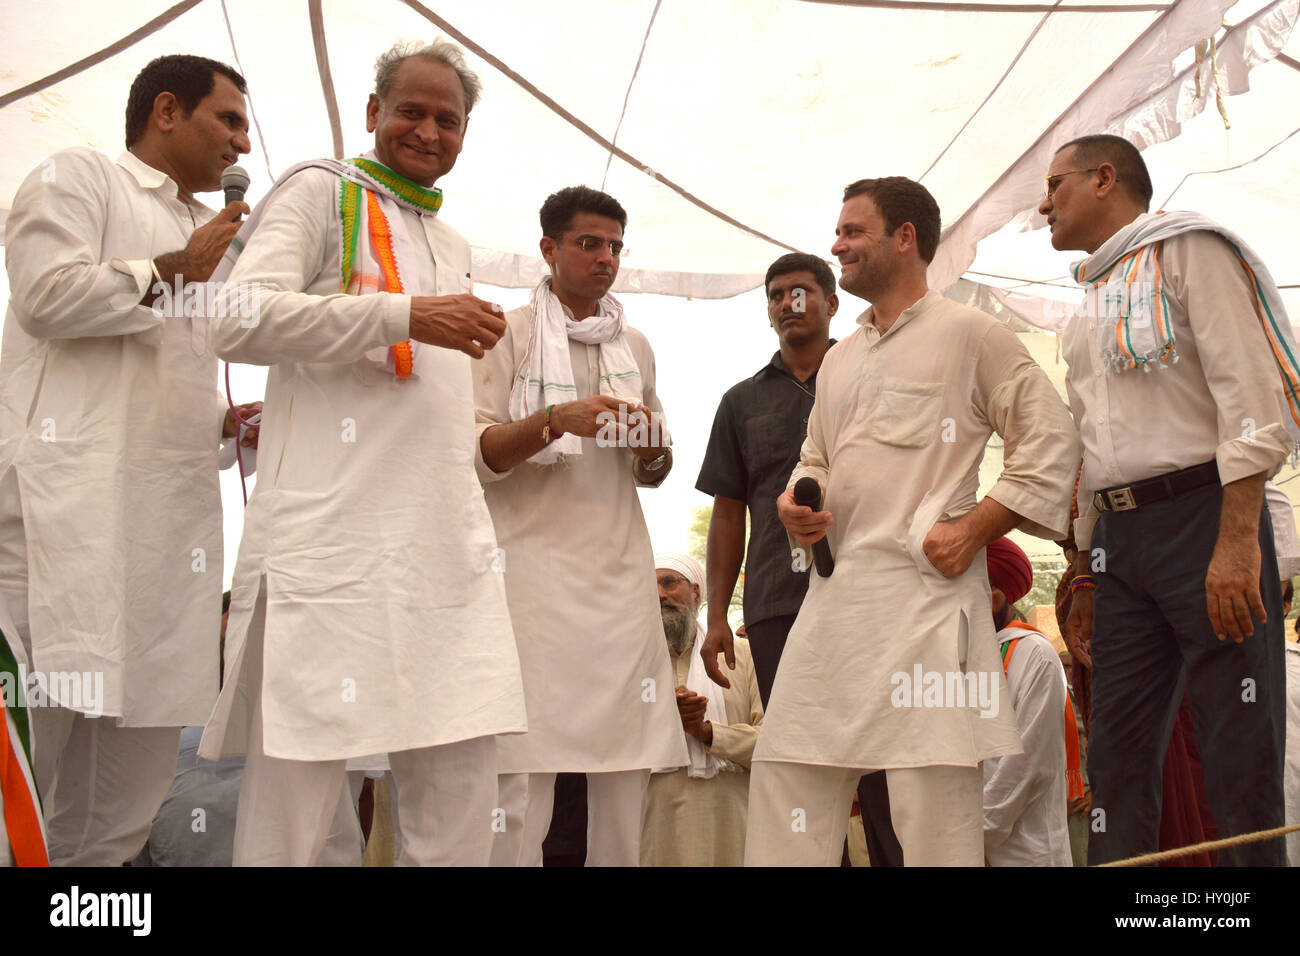 Indian national congress party members, rahul gandhi, ashok gehlot and sachin pilot, india, asia - Stock Image